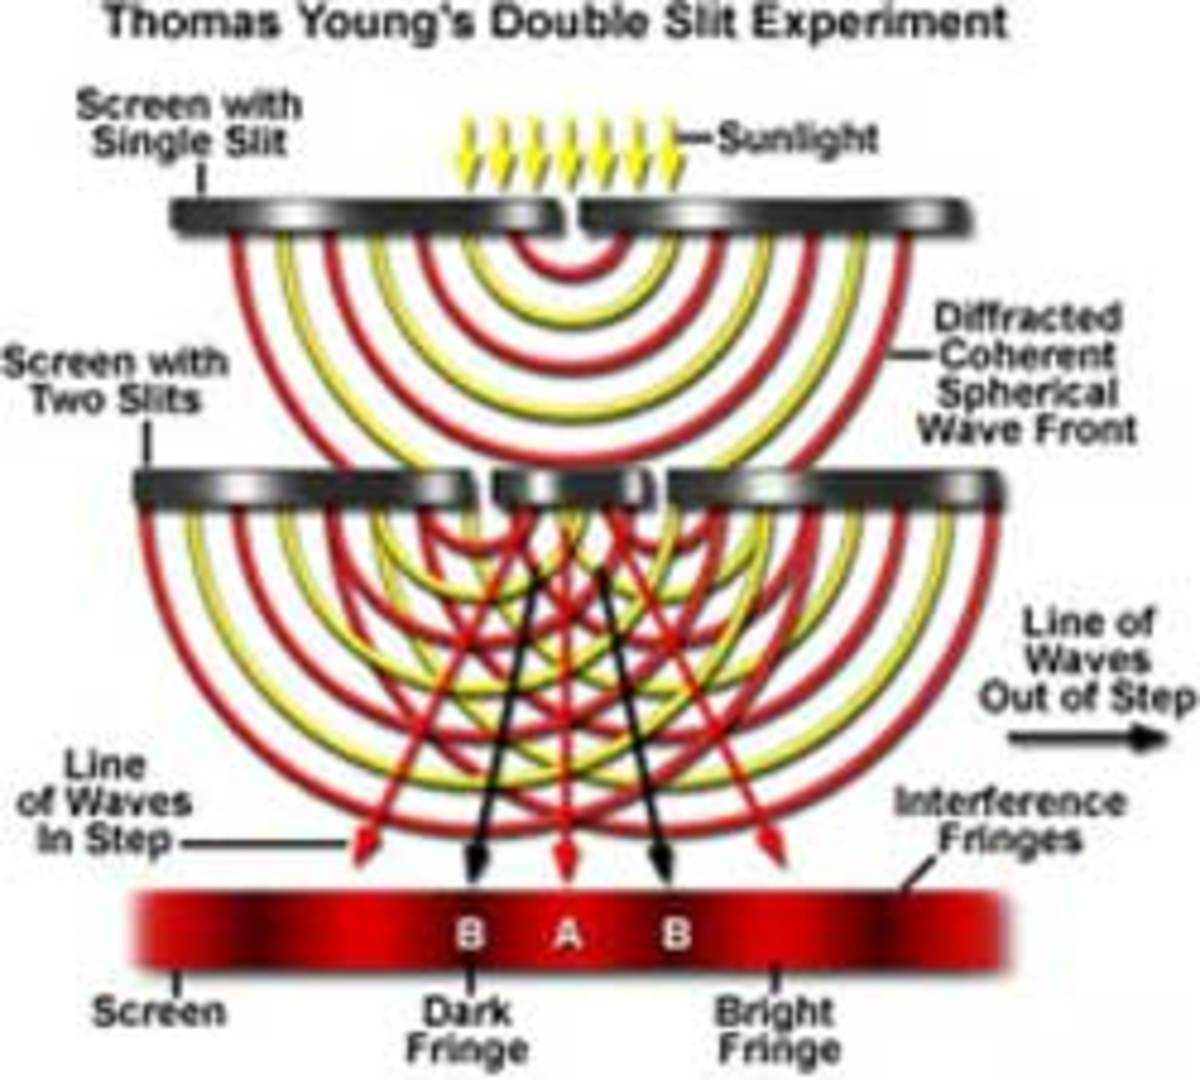 Further weirdness emerges from the double slit experiment. Various methods of doing the experiment have raised more questions than they answered.